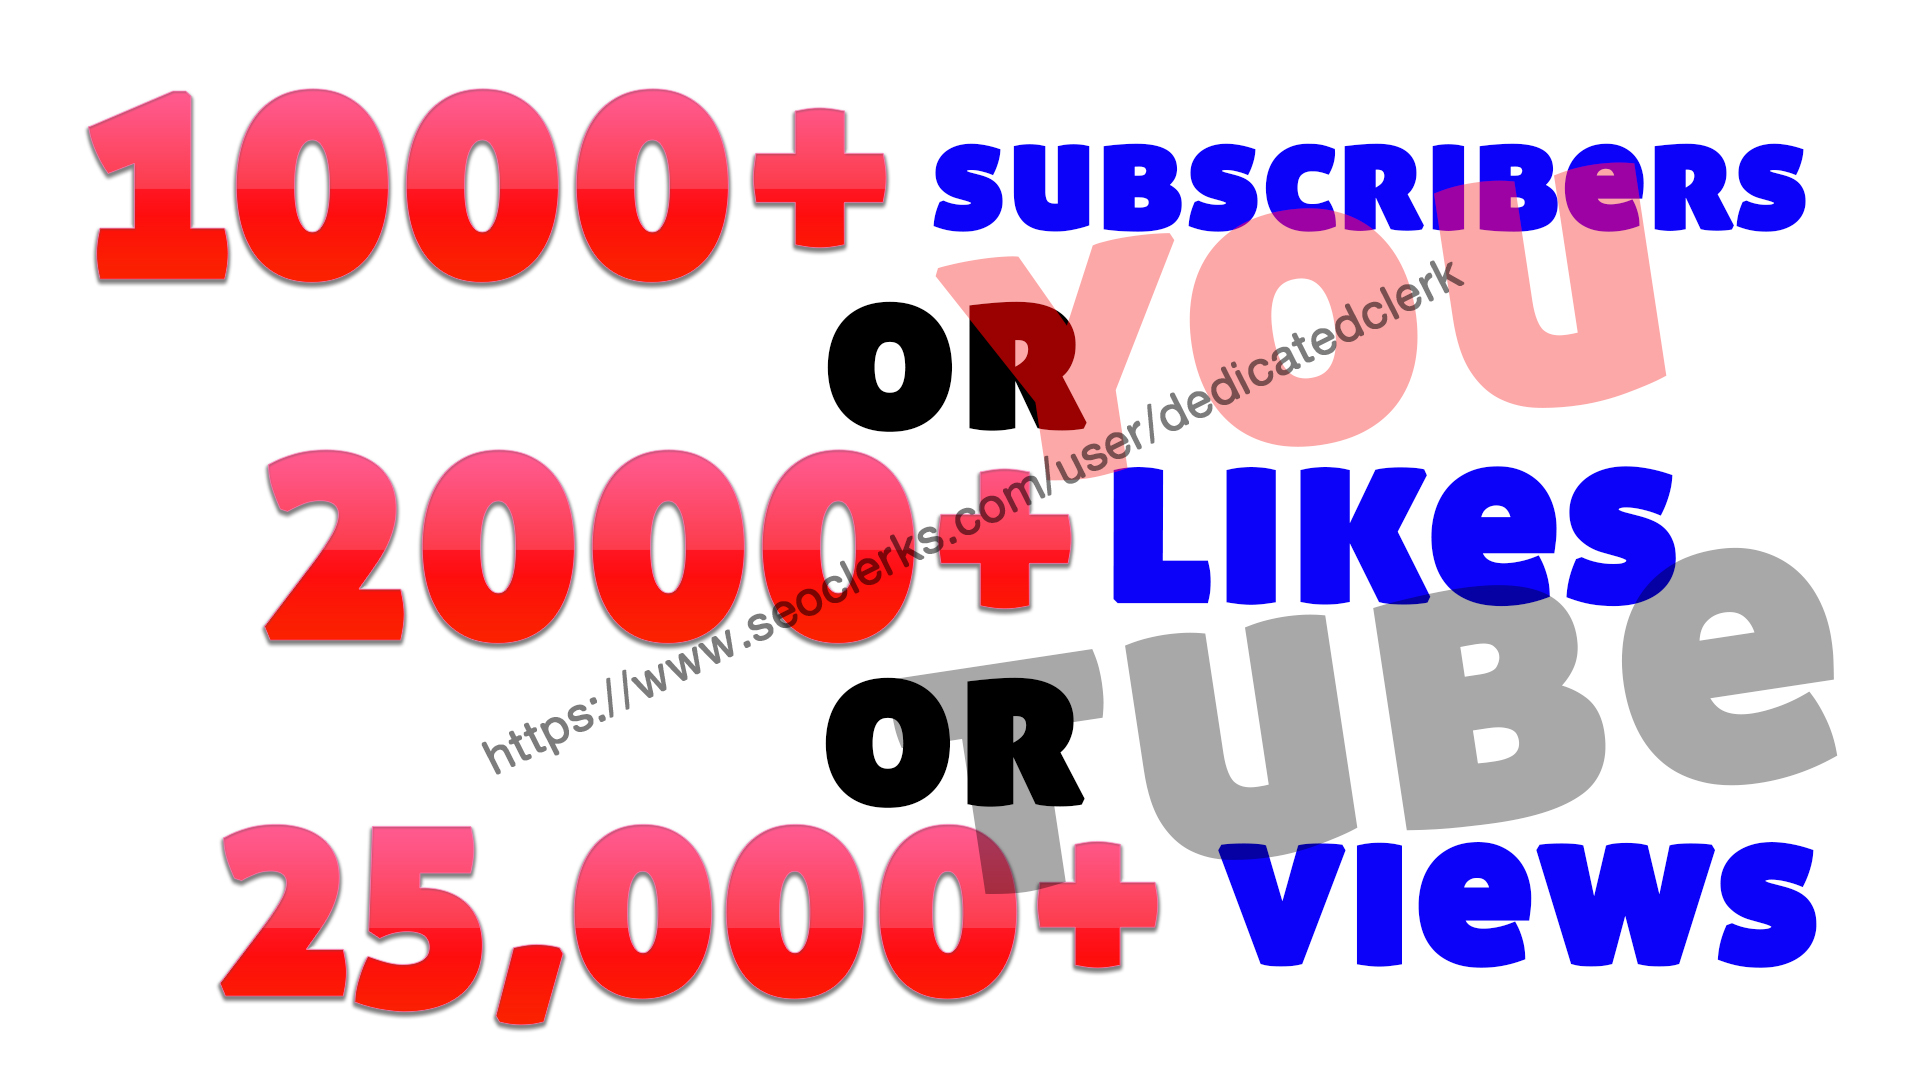 Add 1000+ youtube subscribers or 2000+ youtube likes or 25,000 youtube views